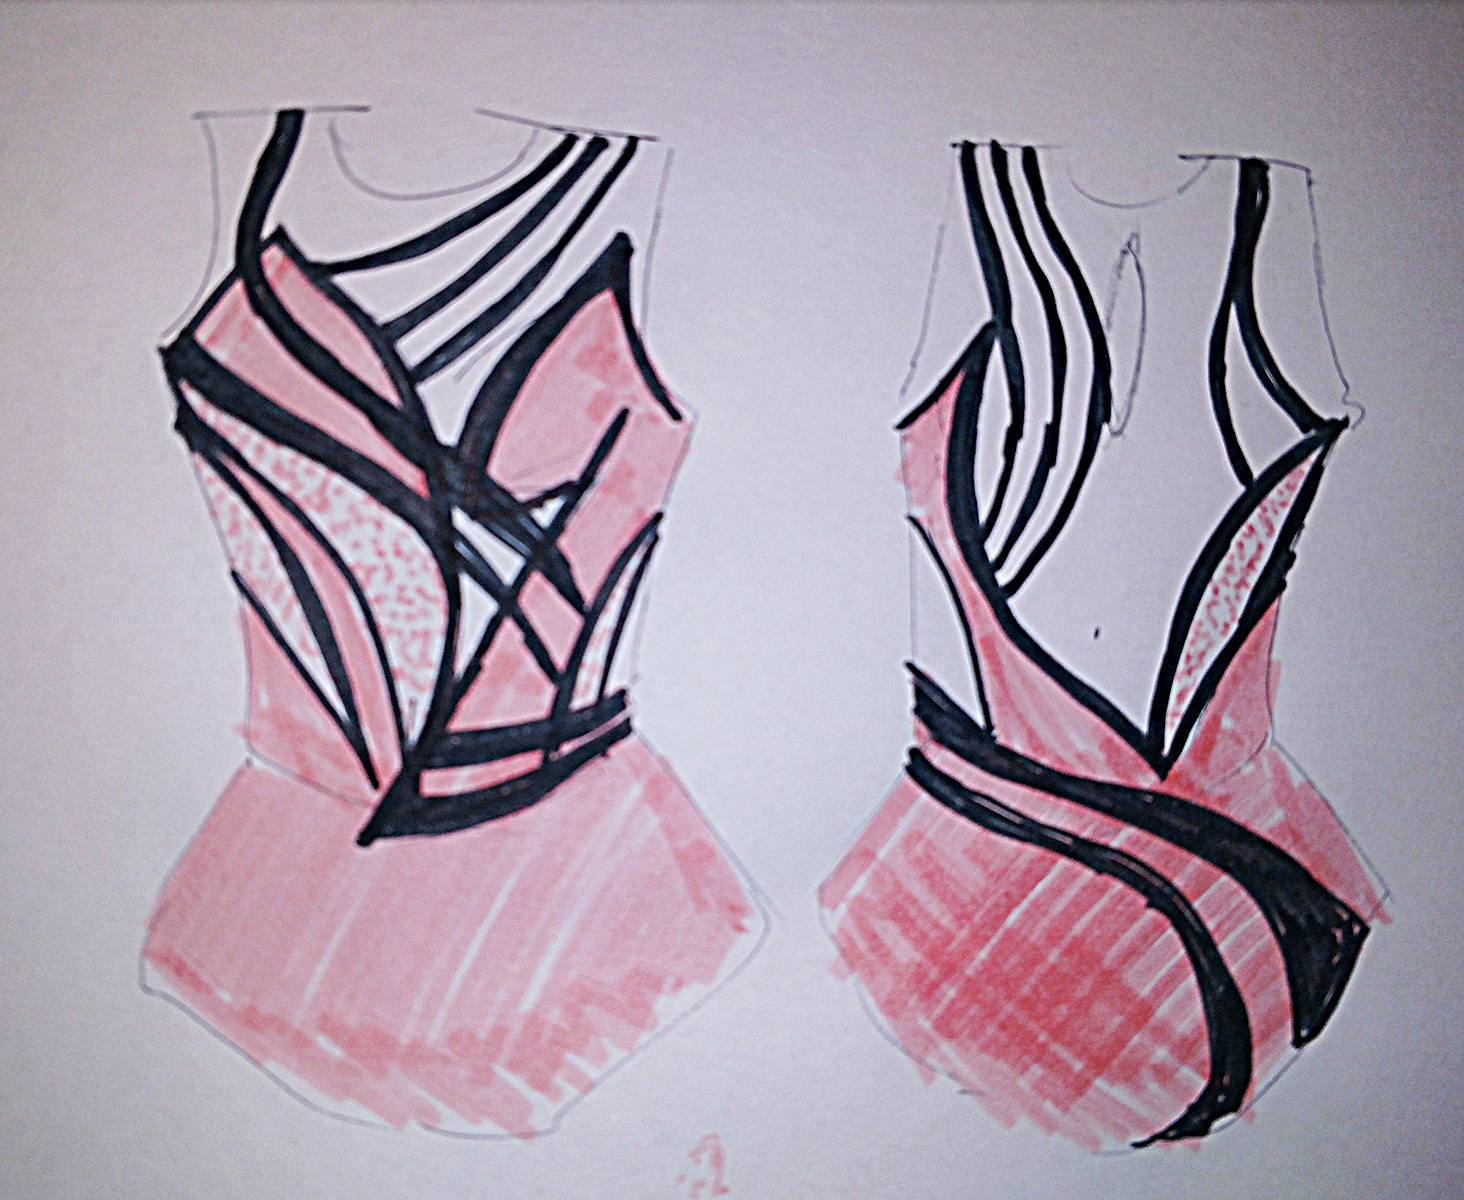 A sketch of a figure skating dress, both front and back representations. The dress is pink, with many swirling black lines running across it.